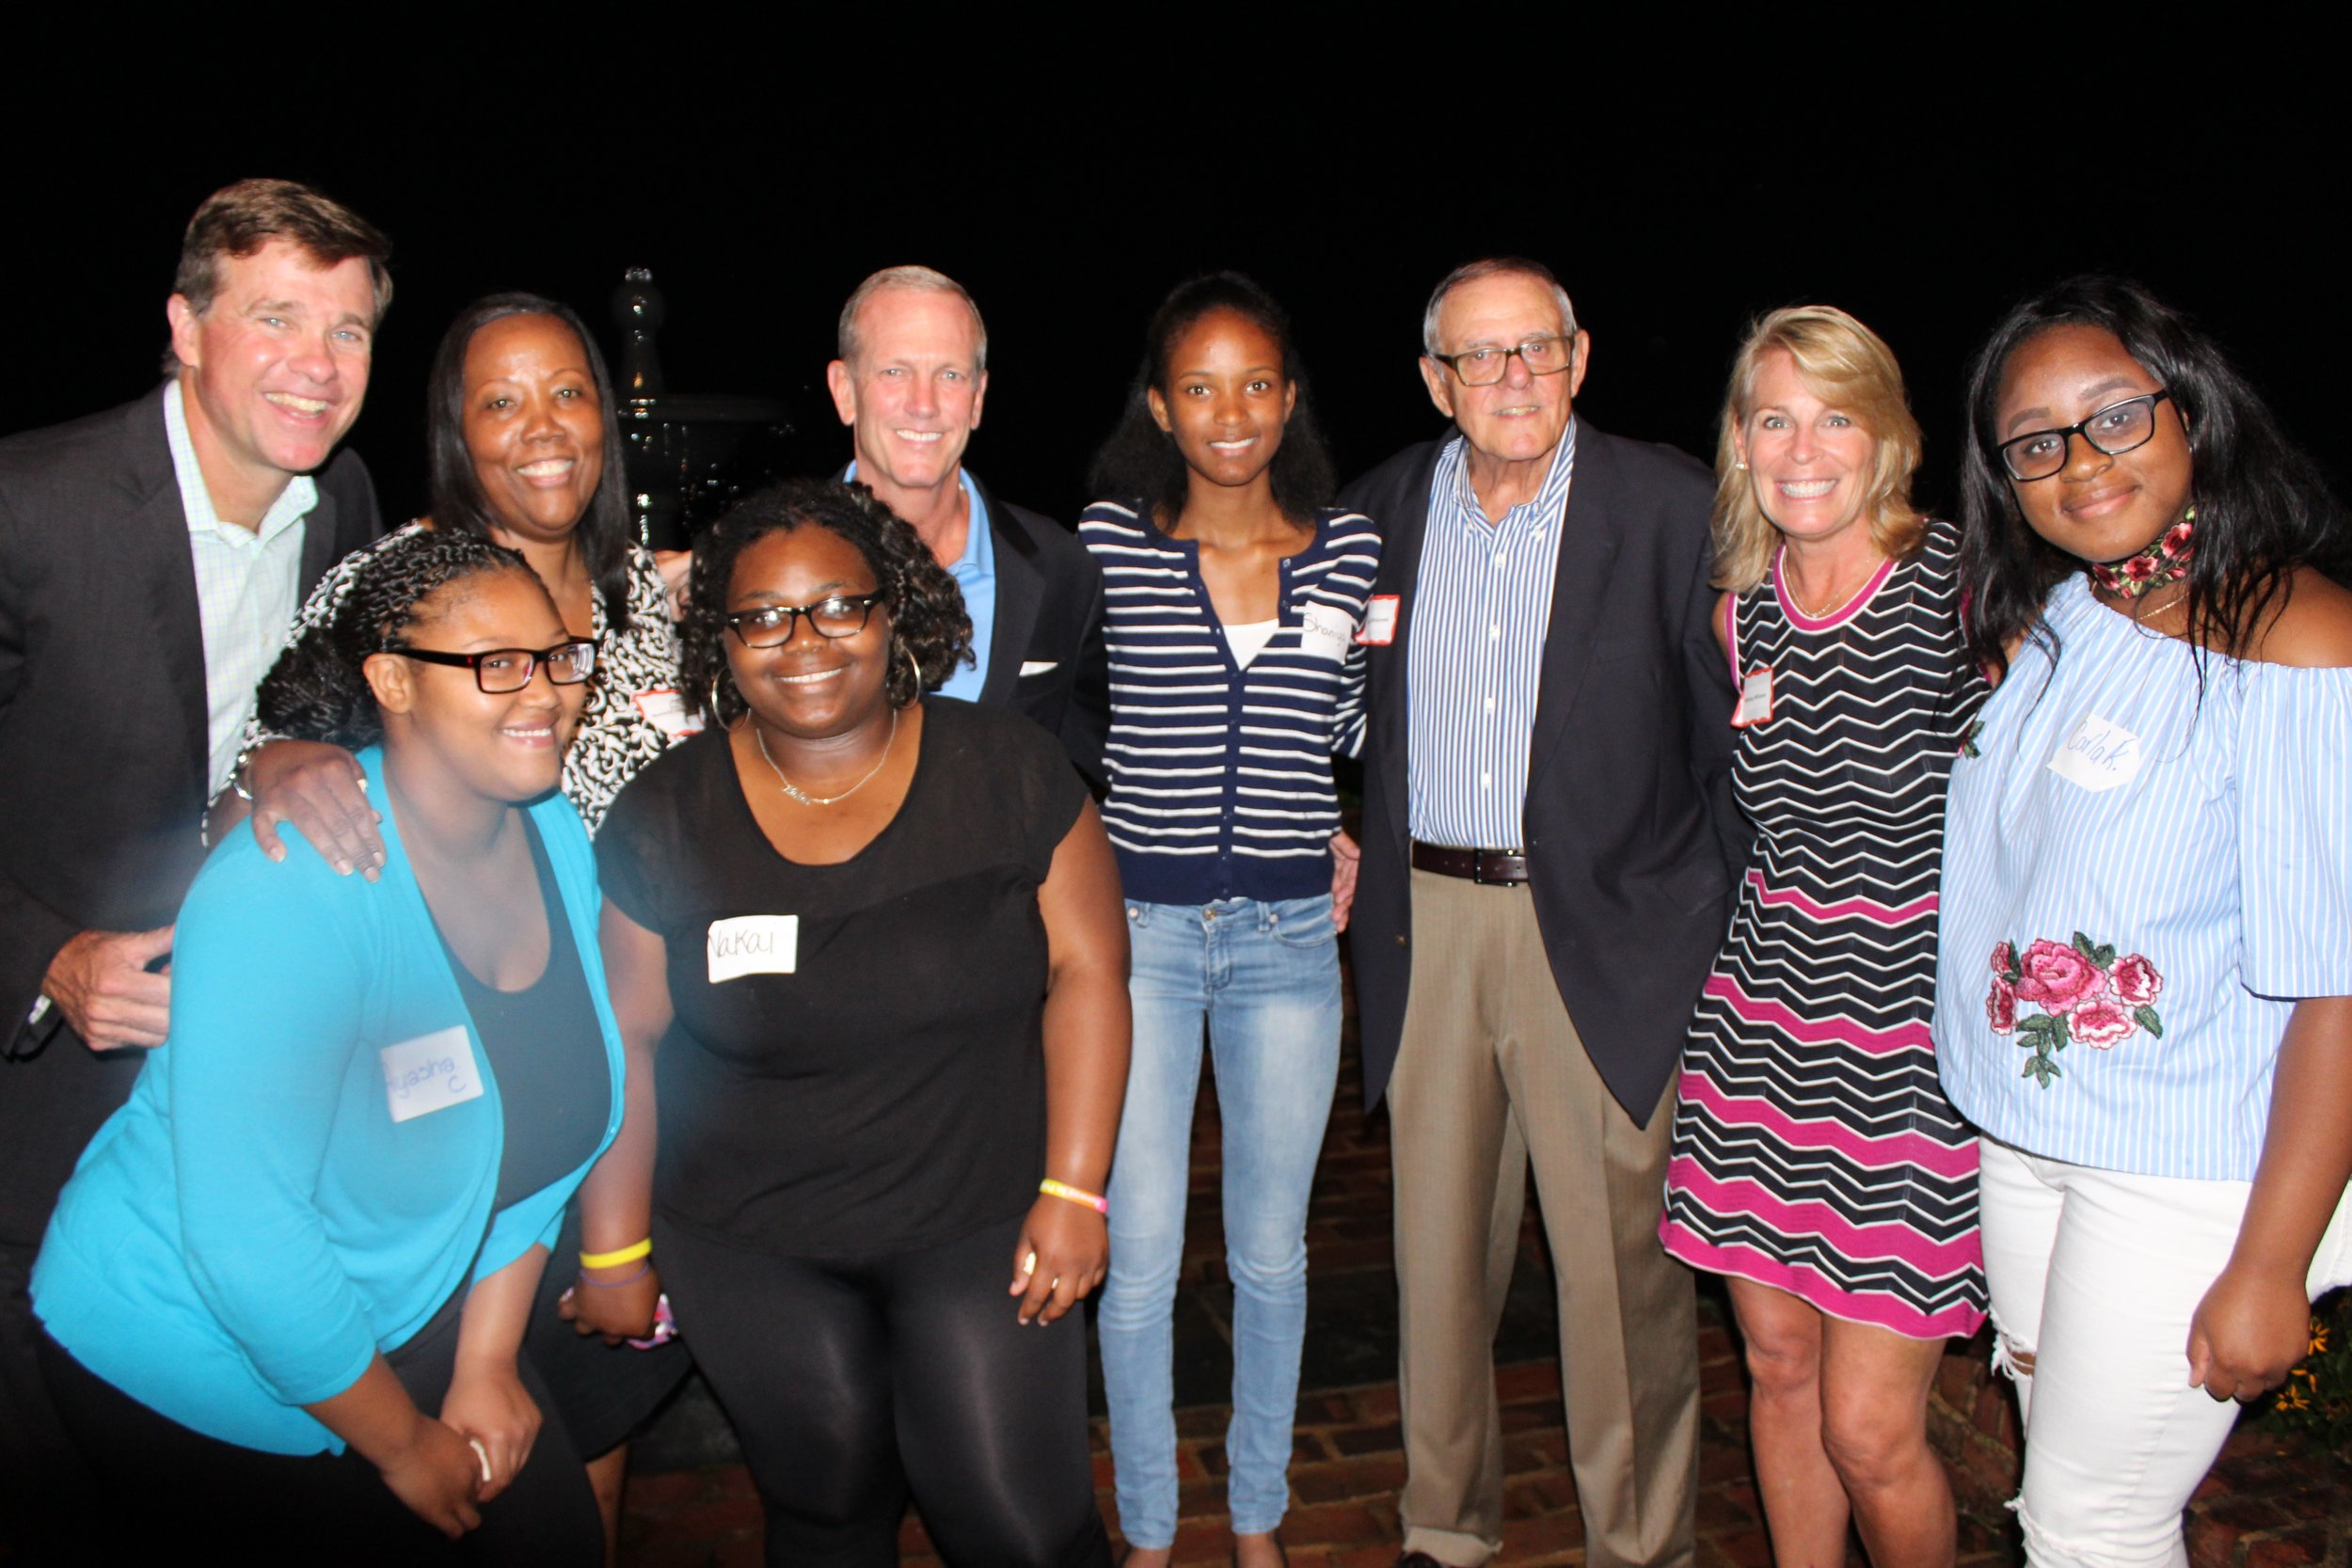 A recent Connections Party to raise funds for the Carver Foundation of Norwalk drew 75 people. These include, top, from left, Joe Gallagher, Novelette Peterkin, Nick Williams, Shaniya Mesilien, Dick Whitcomb, Whitney Williams and Carla Romeus; bottom, from left, Ayasha Cantey and Nakai Steen. — Contributed photo. New Canaan recently helped educate kids whom are apart of the Carver Foundation of Norwalk, and at the Carver Community Center also in Norwalk.